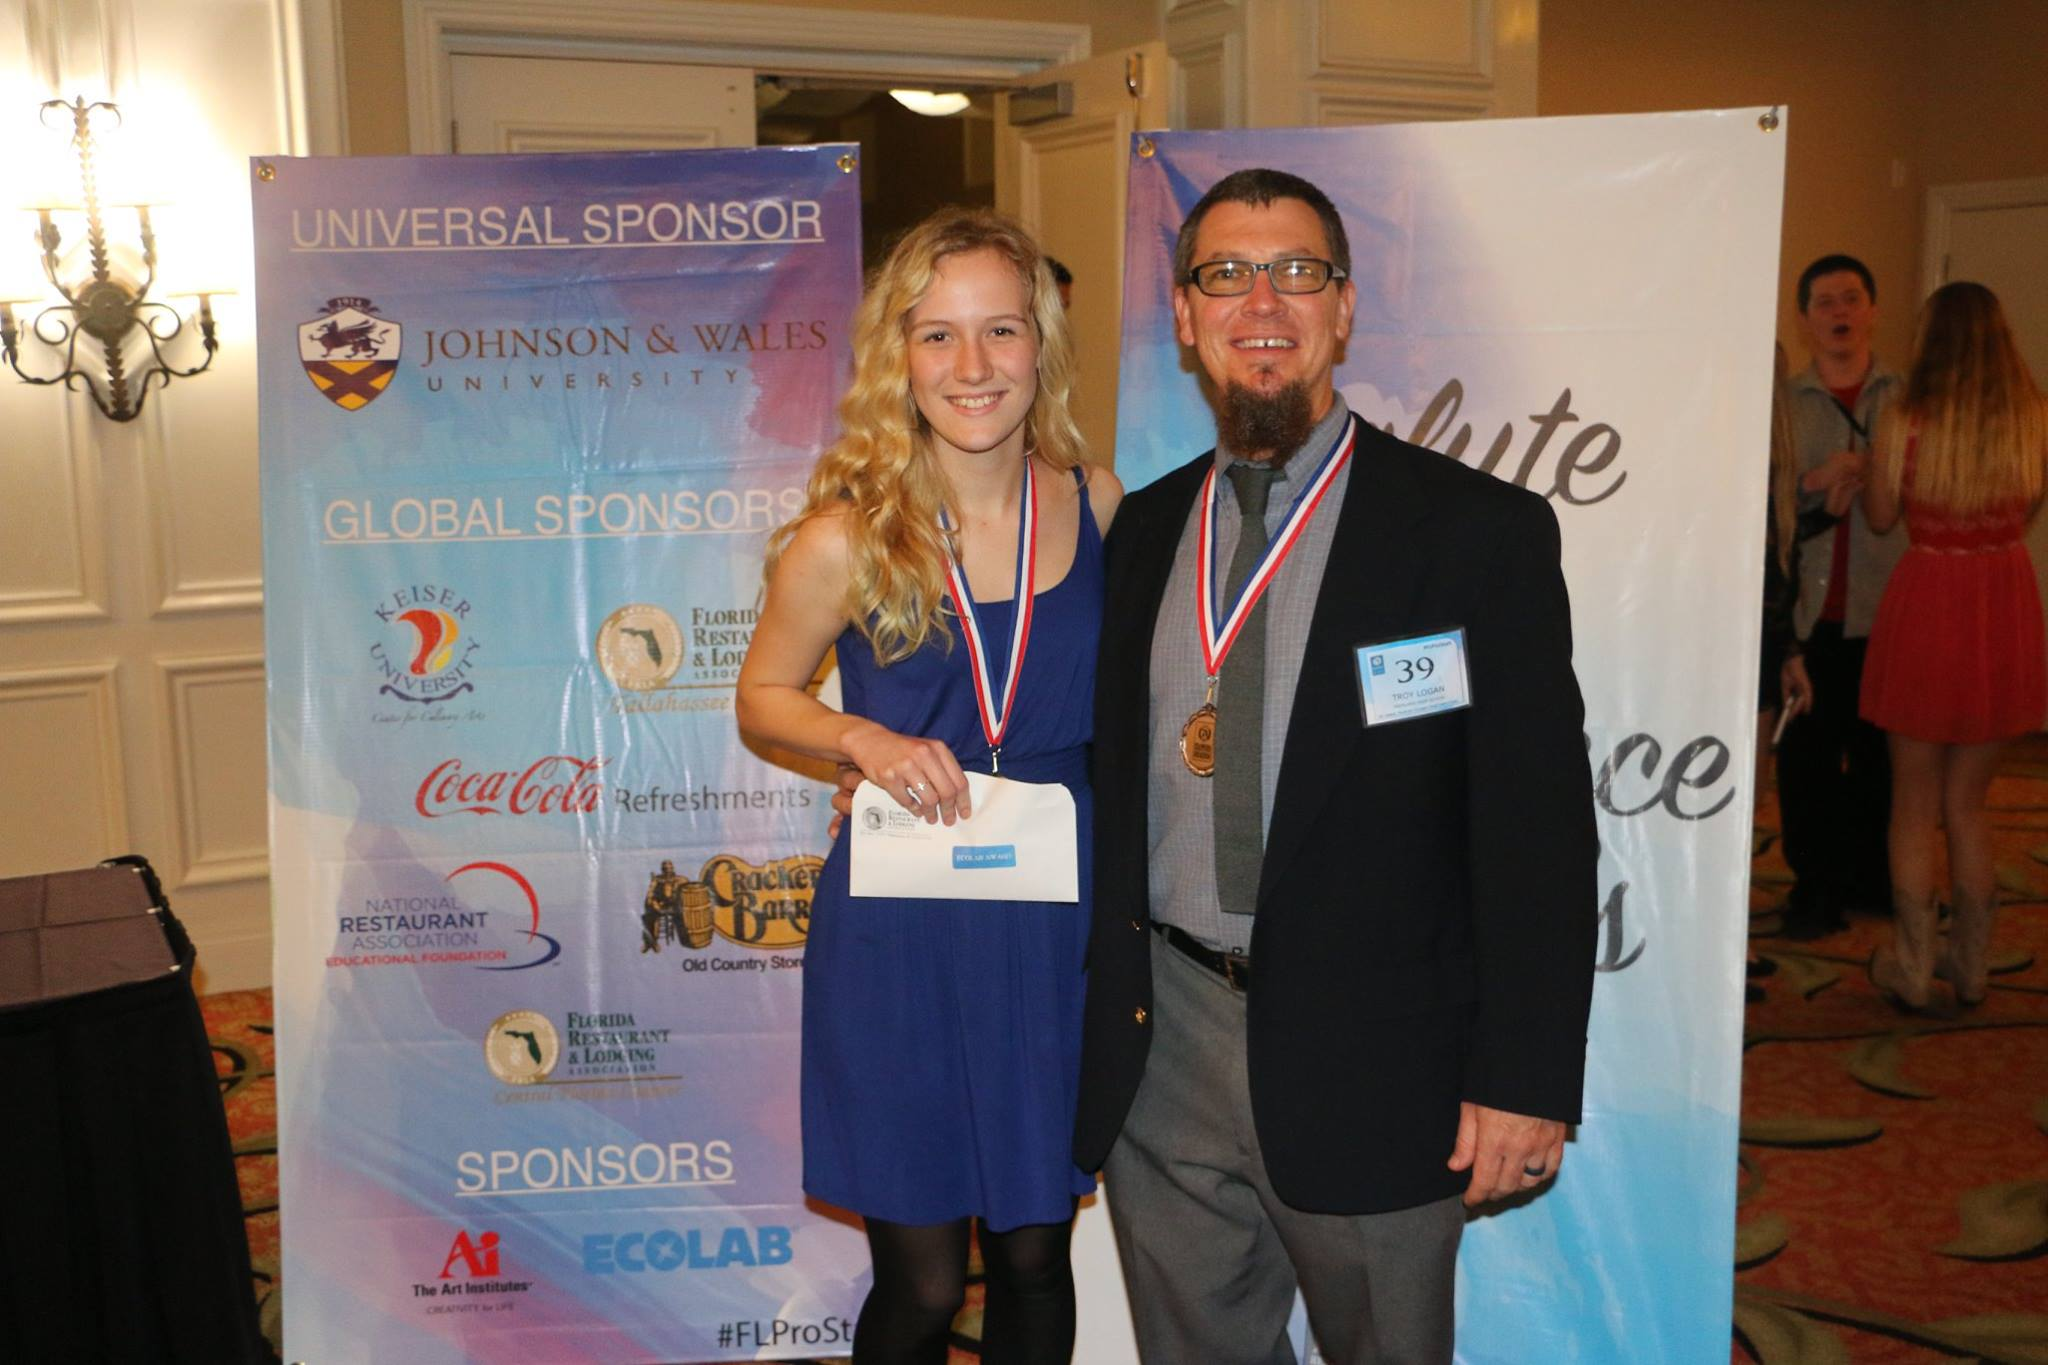 prostart newsbites 2016 frla ary 6 2016 at the rosen plaza hotel in orlando scholarship recipients must be pursuing a degree in culinary or hospitality see the awardees below